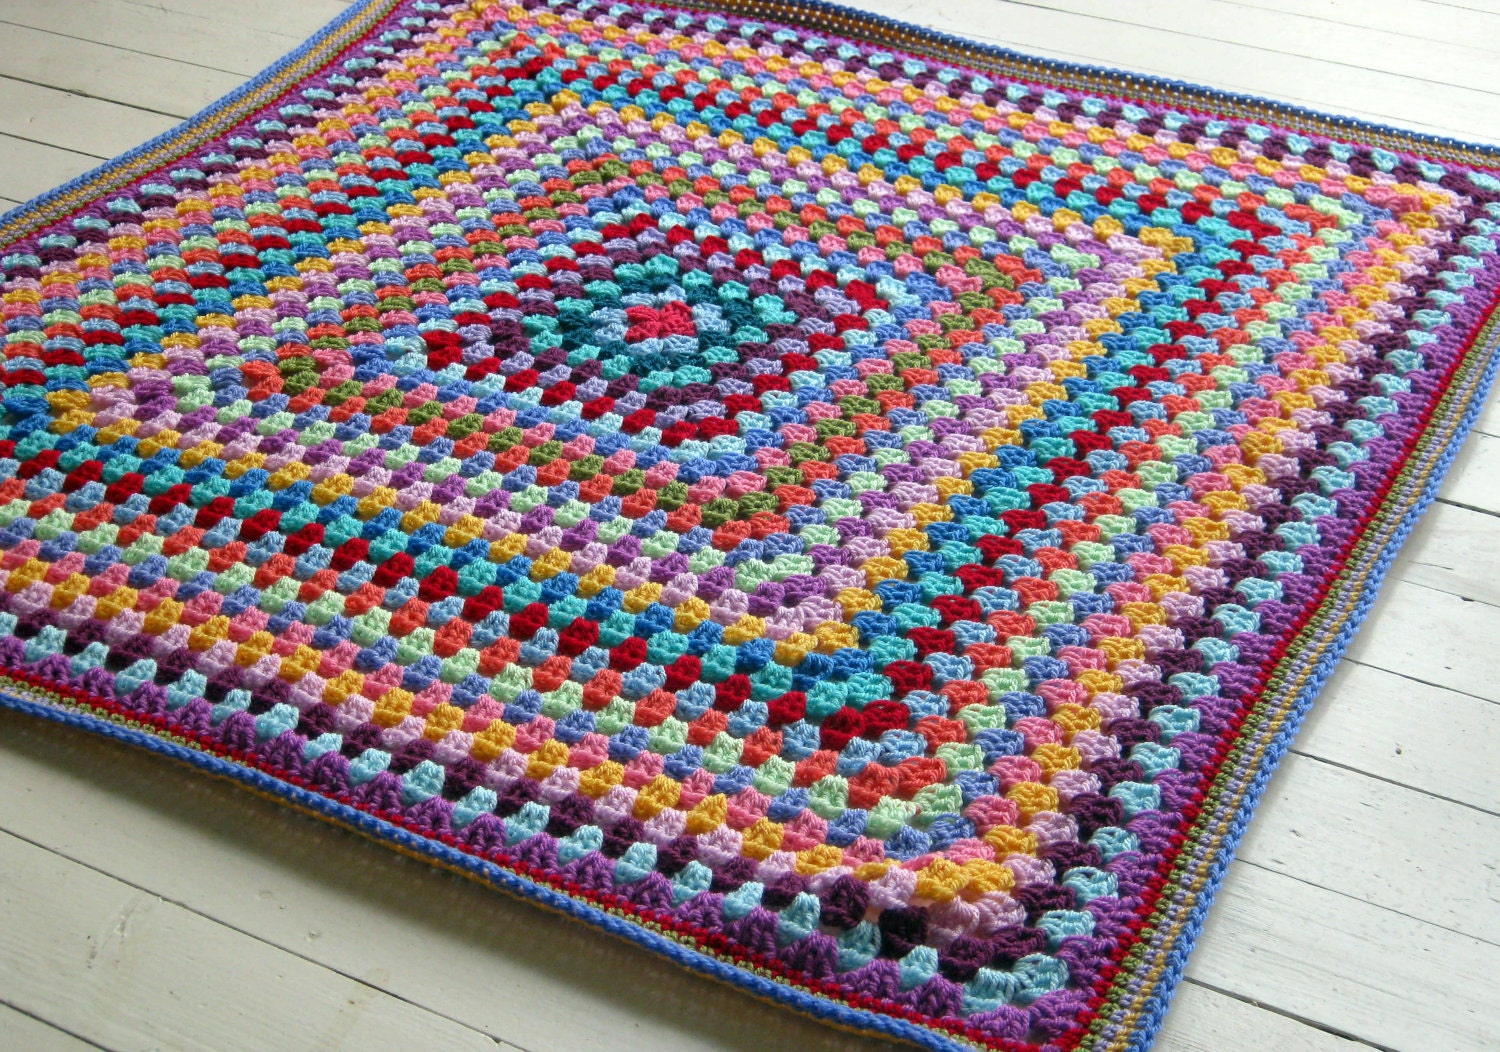 Granny Square Crochet Blanket Rainbow Colors by Thesunroomuk